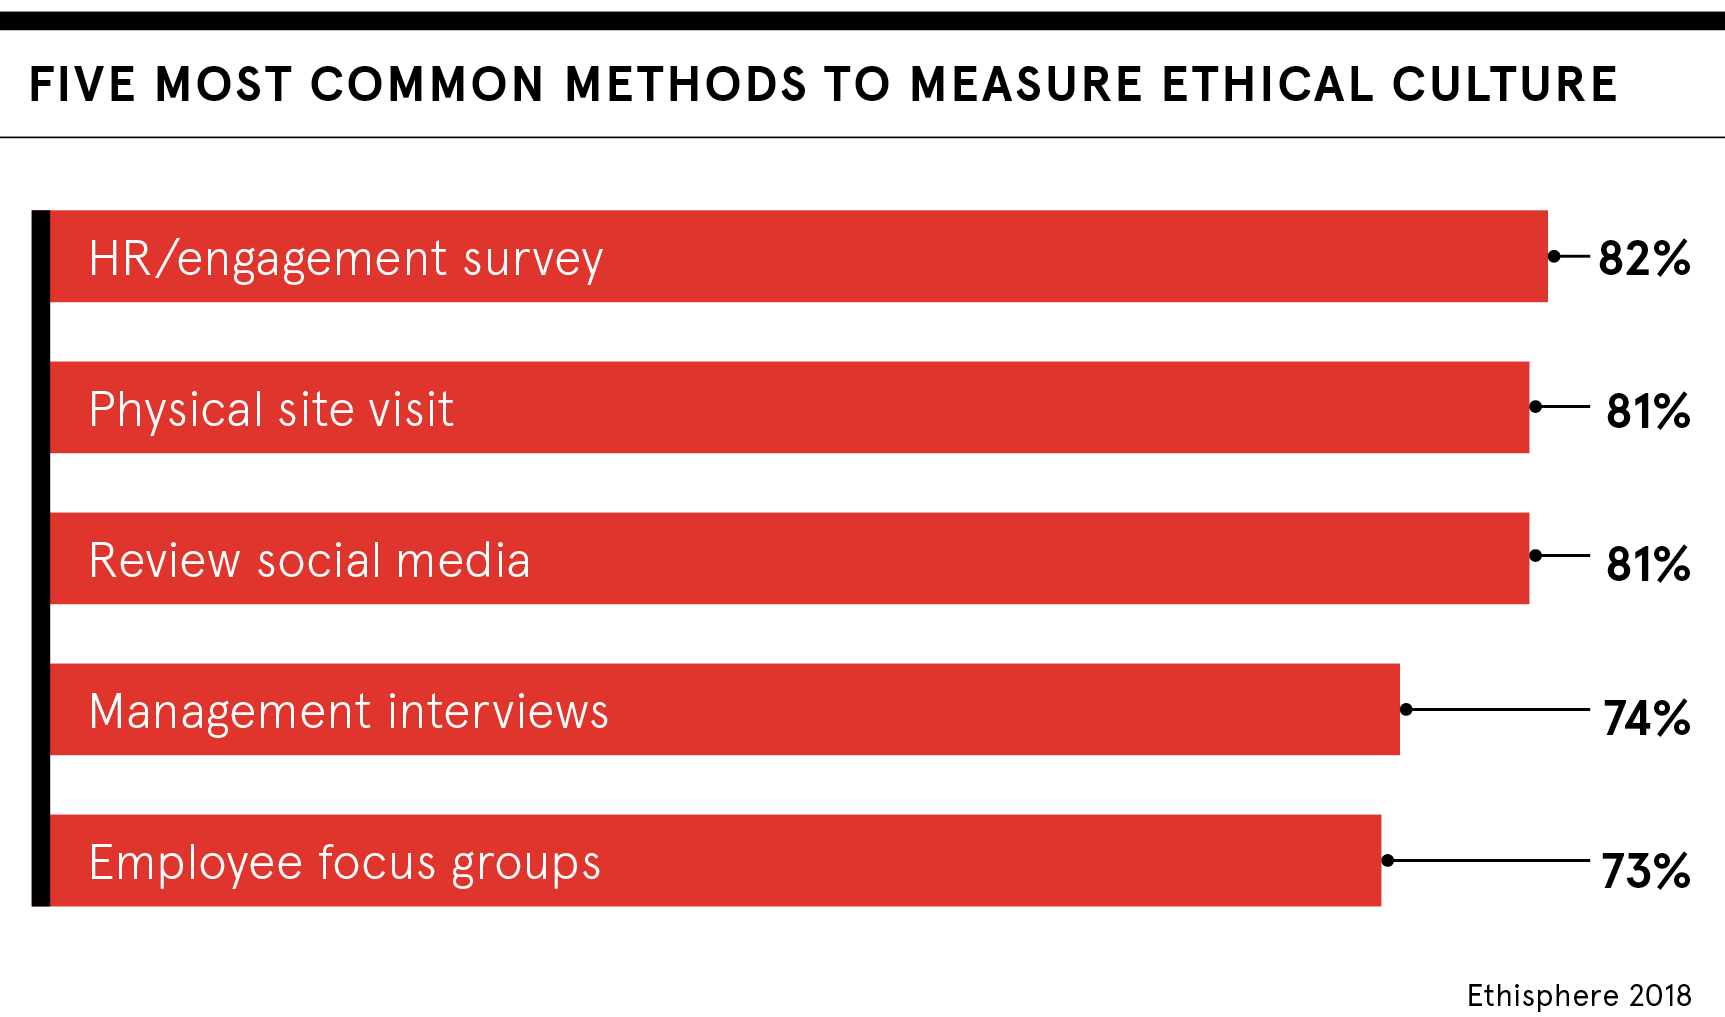 Common methods for measuring ethical culture